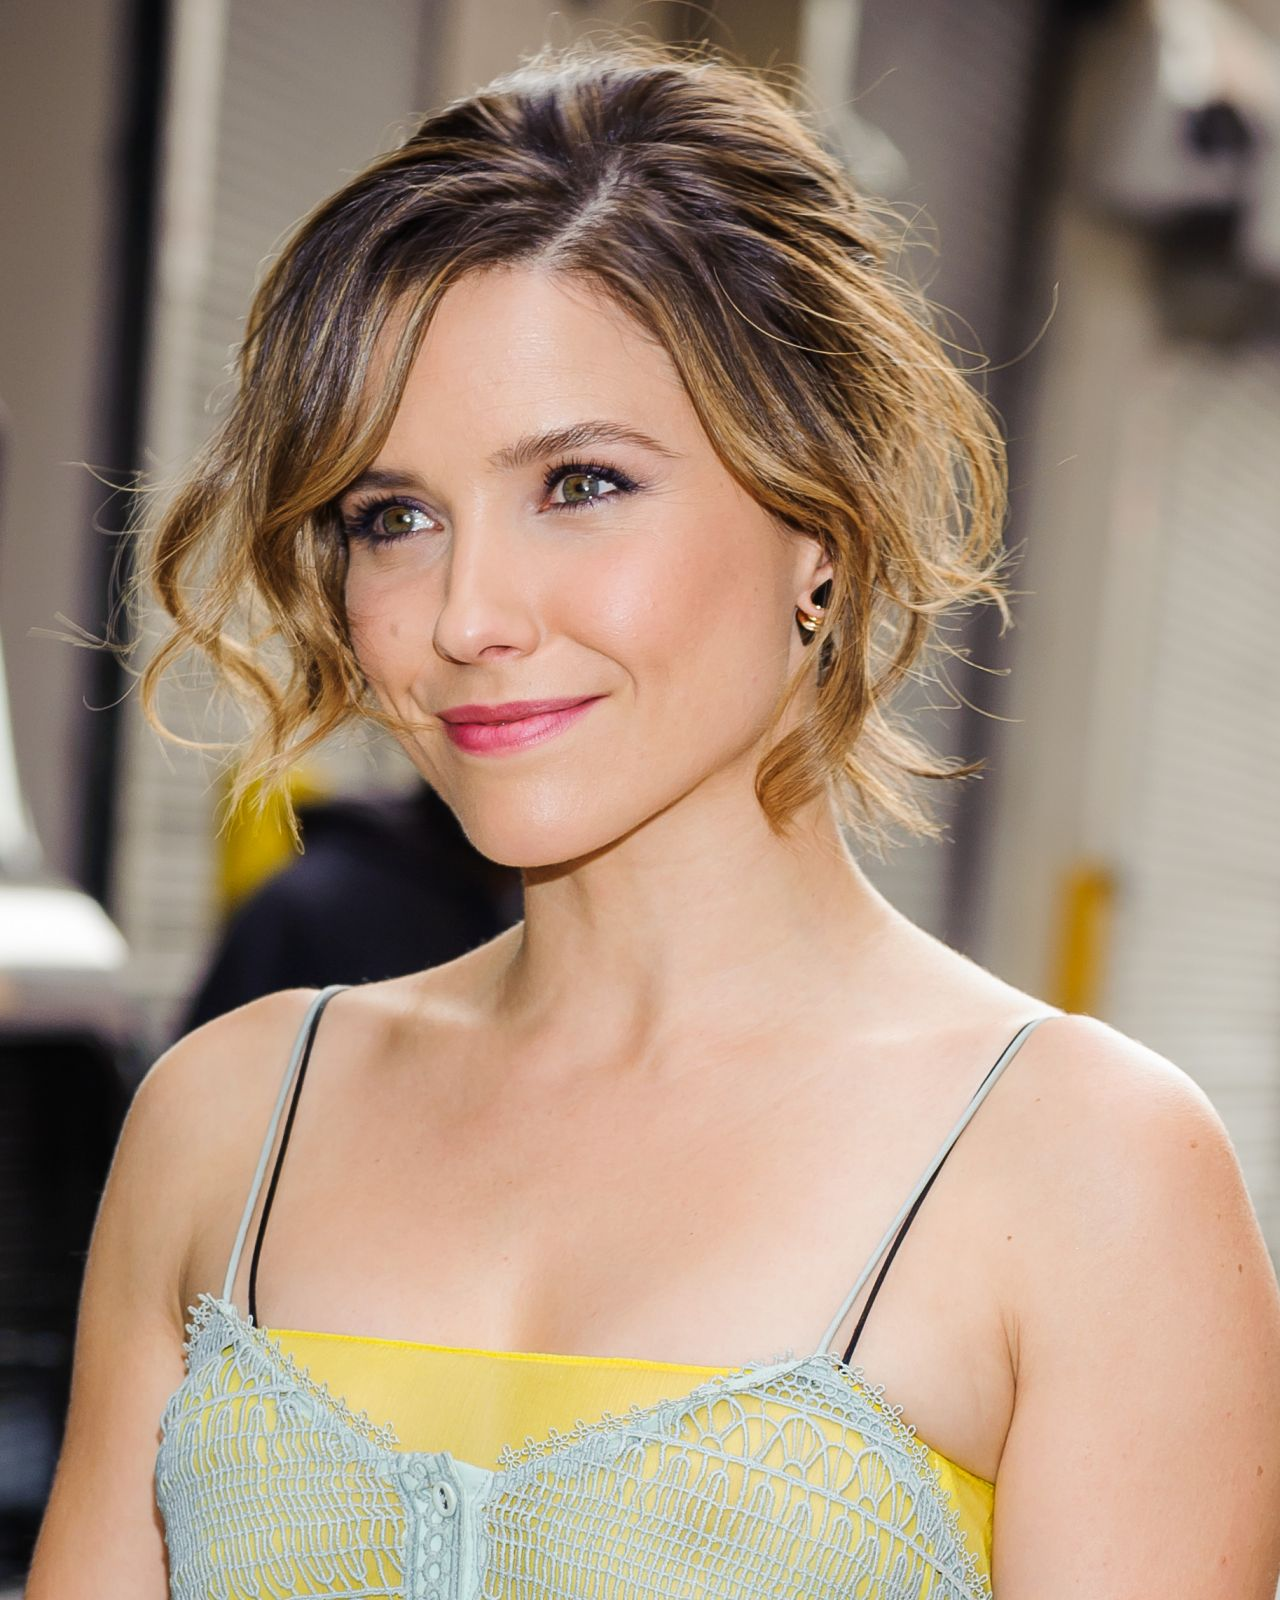 Sophia Bush At Huffington Post Live In New York City 382016-7152